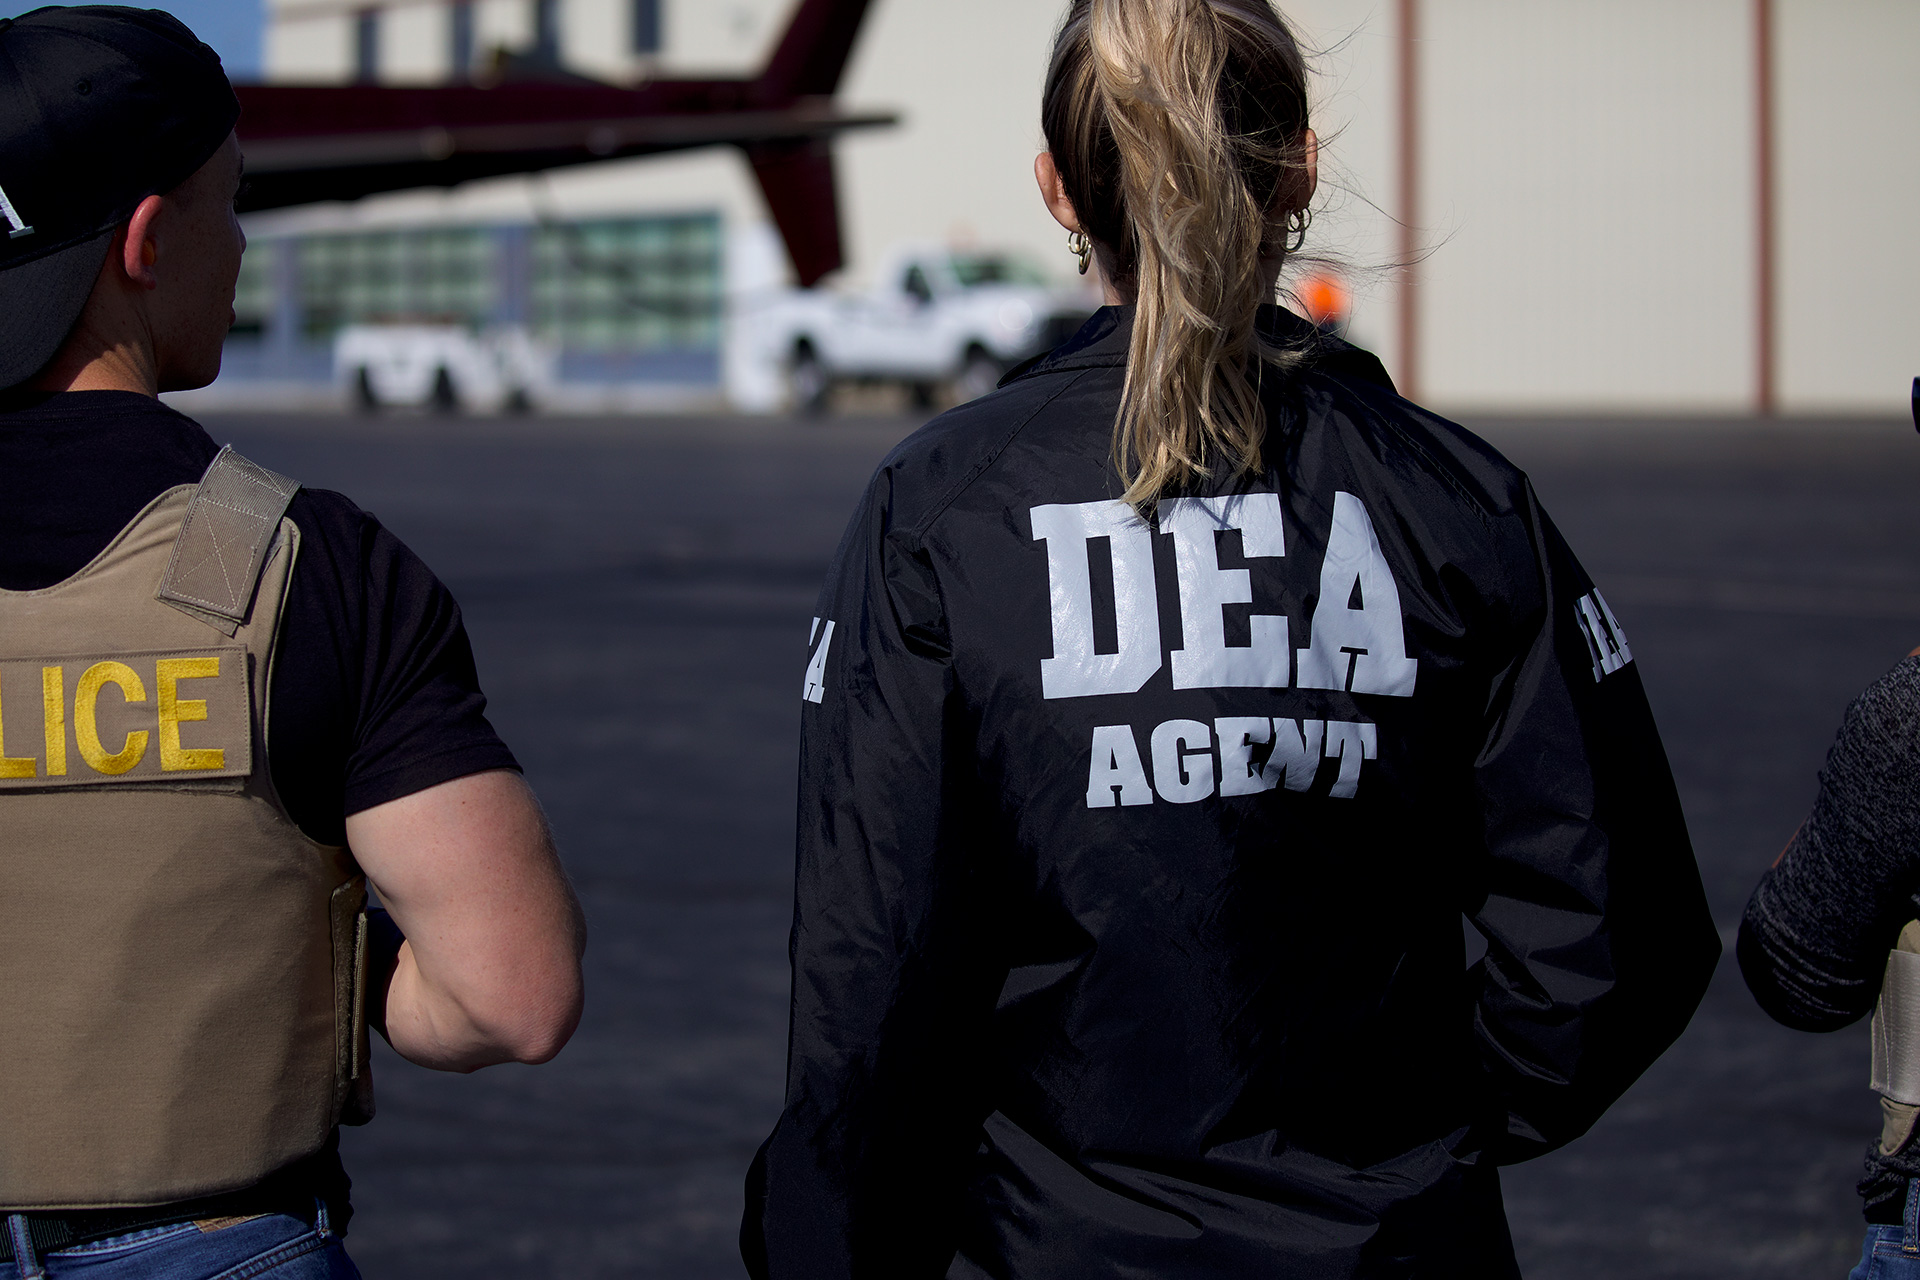 'The DEA is mentioned 42 times': Hemp industry disturbed by agency's involvement in THC testing rules